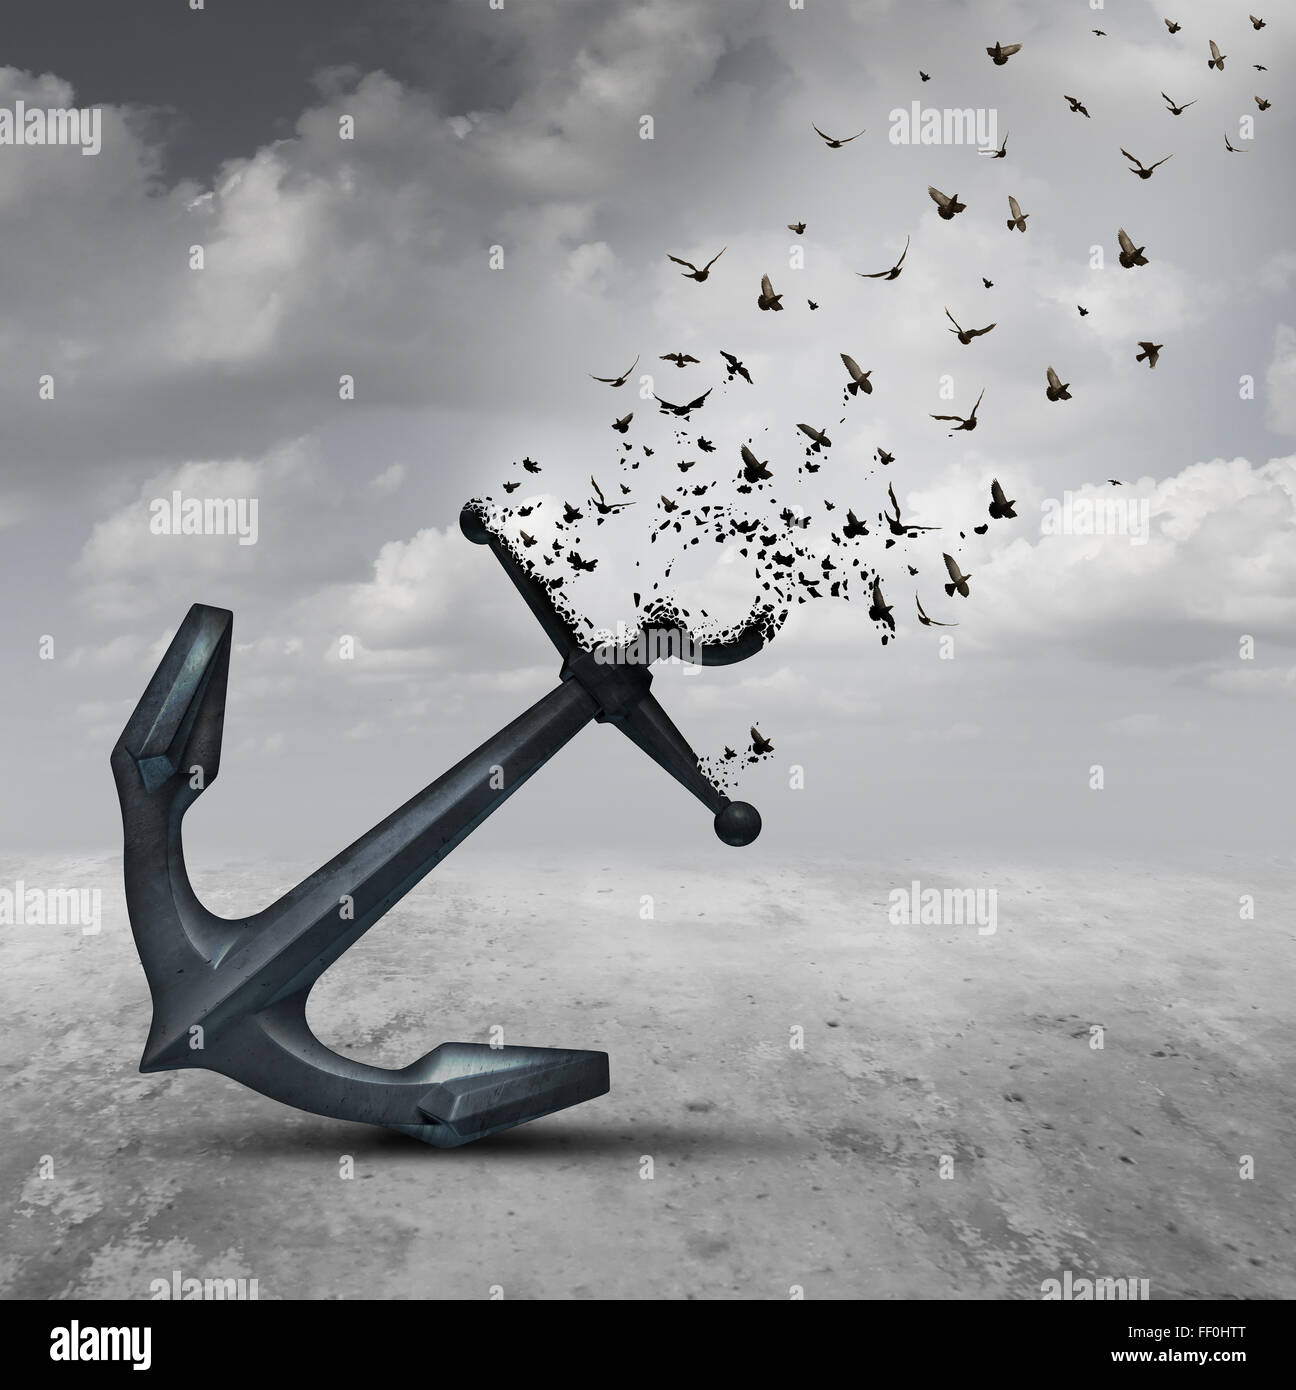 Letting go psychology concept as a heavy anchor transforming into a flying group of birds as a motivational metaphor - Stock Image